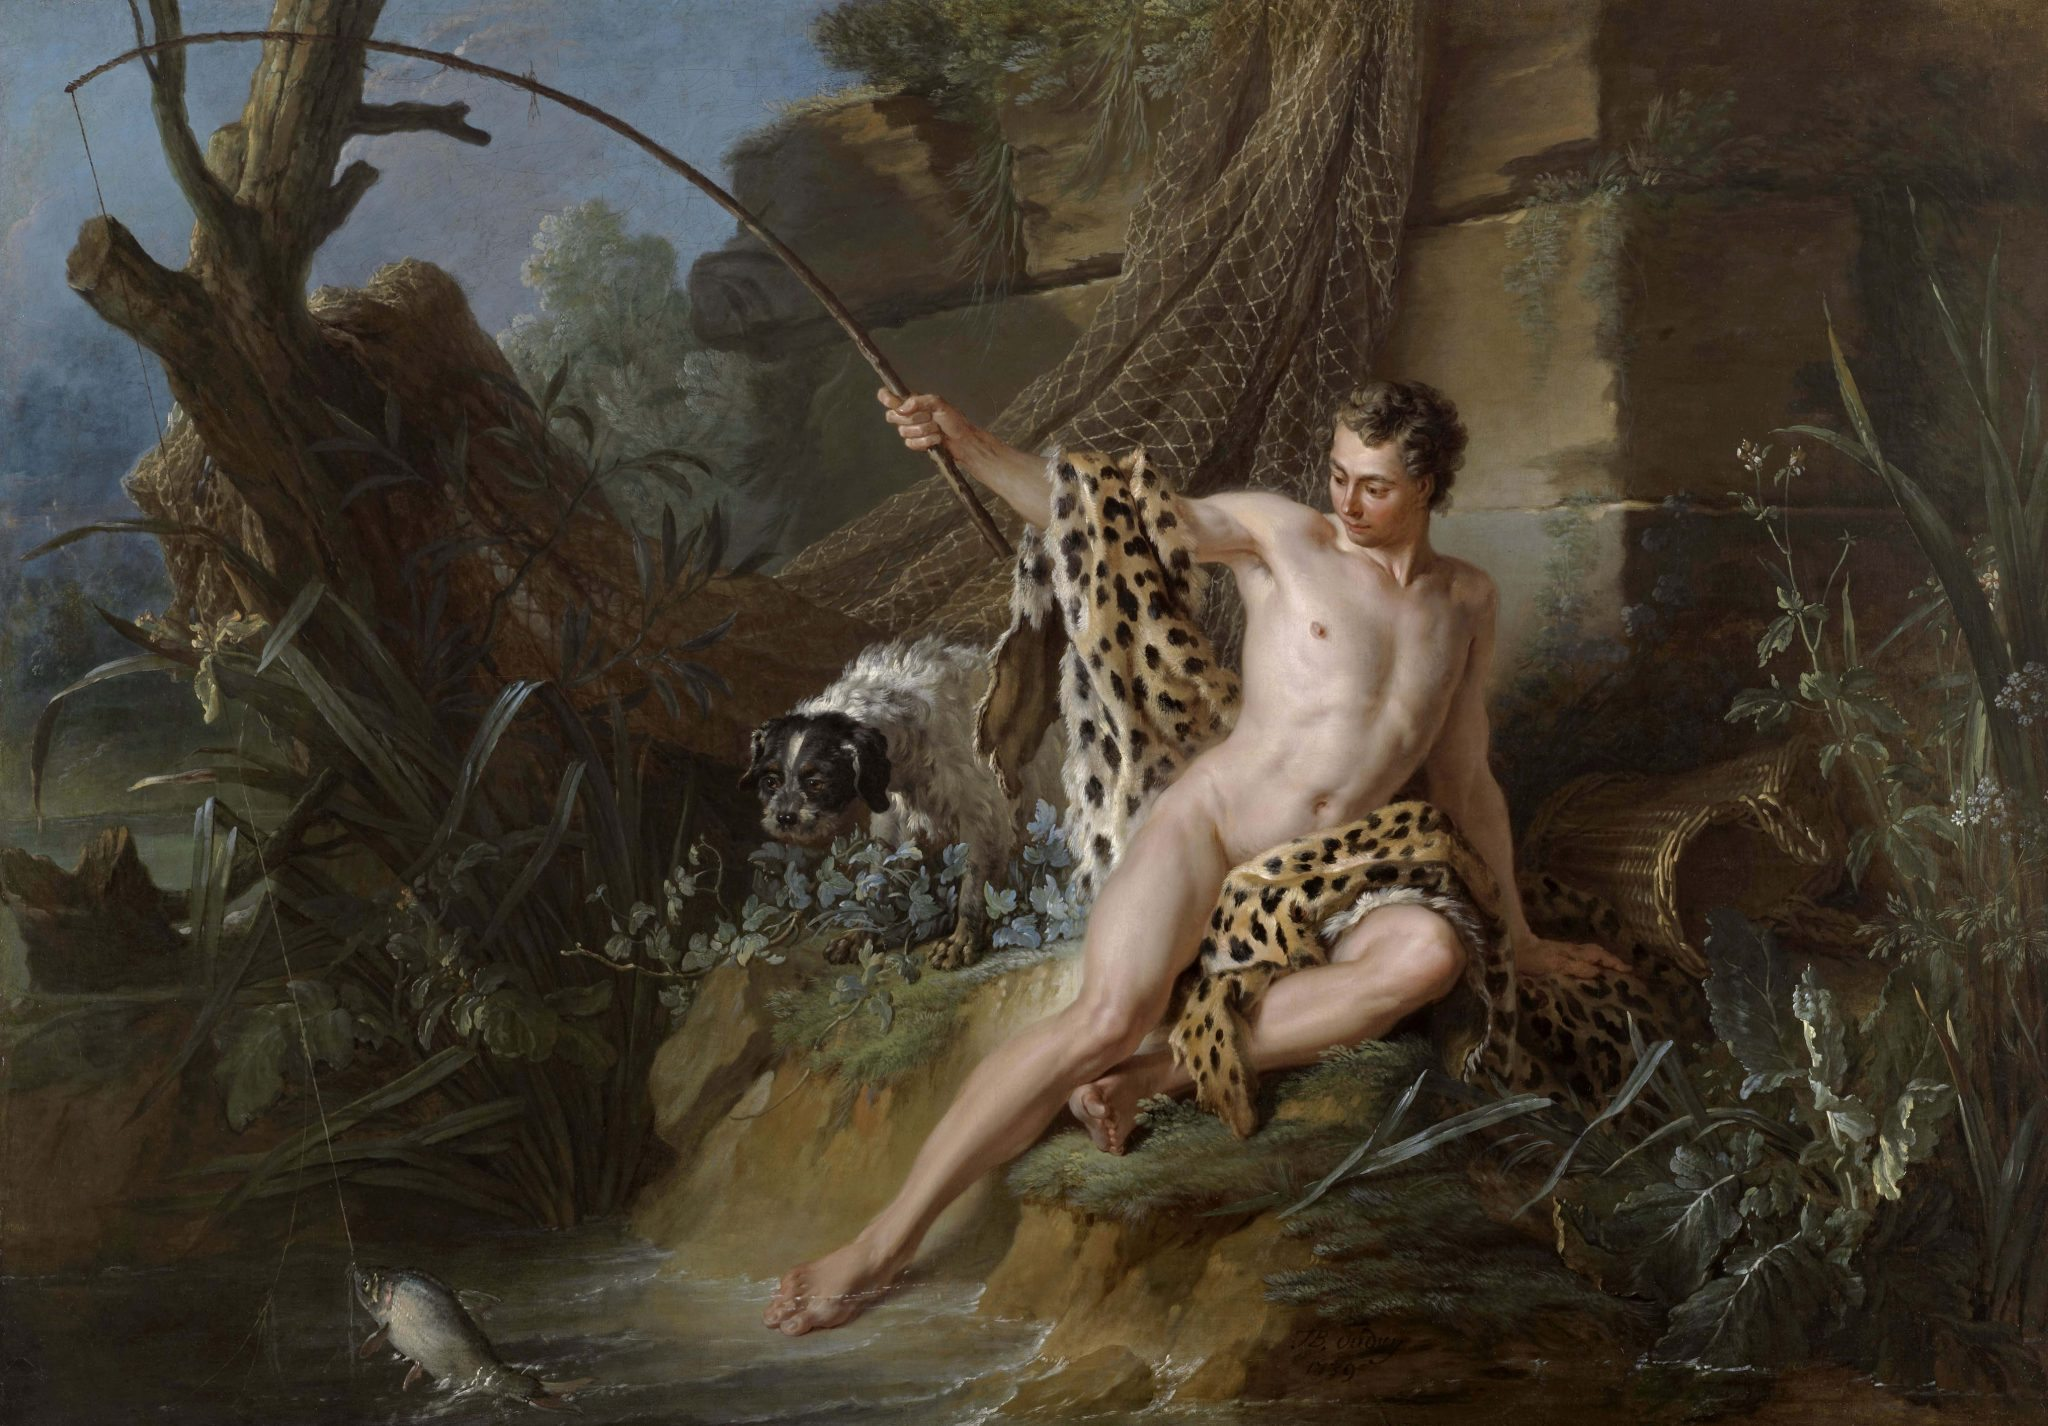 Jean Baptiste Oudry, The Fisherman and the Little Fish